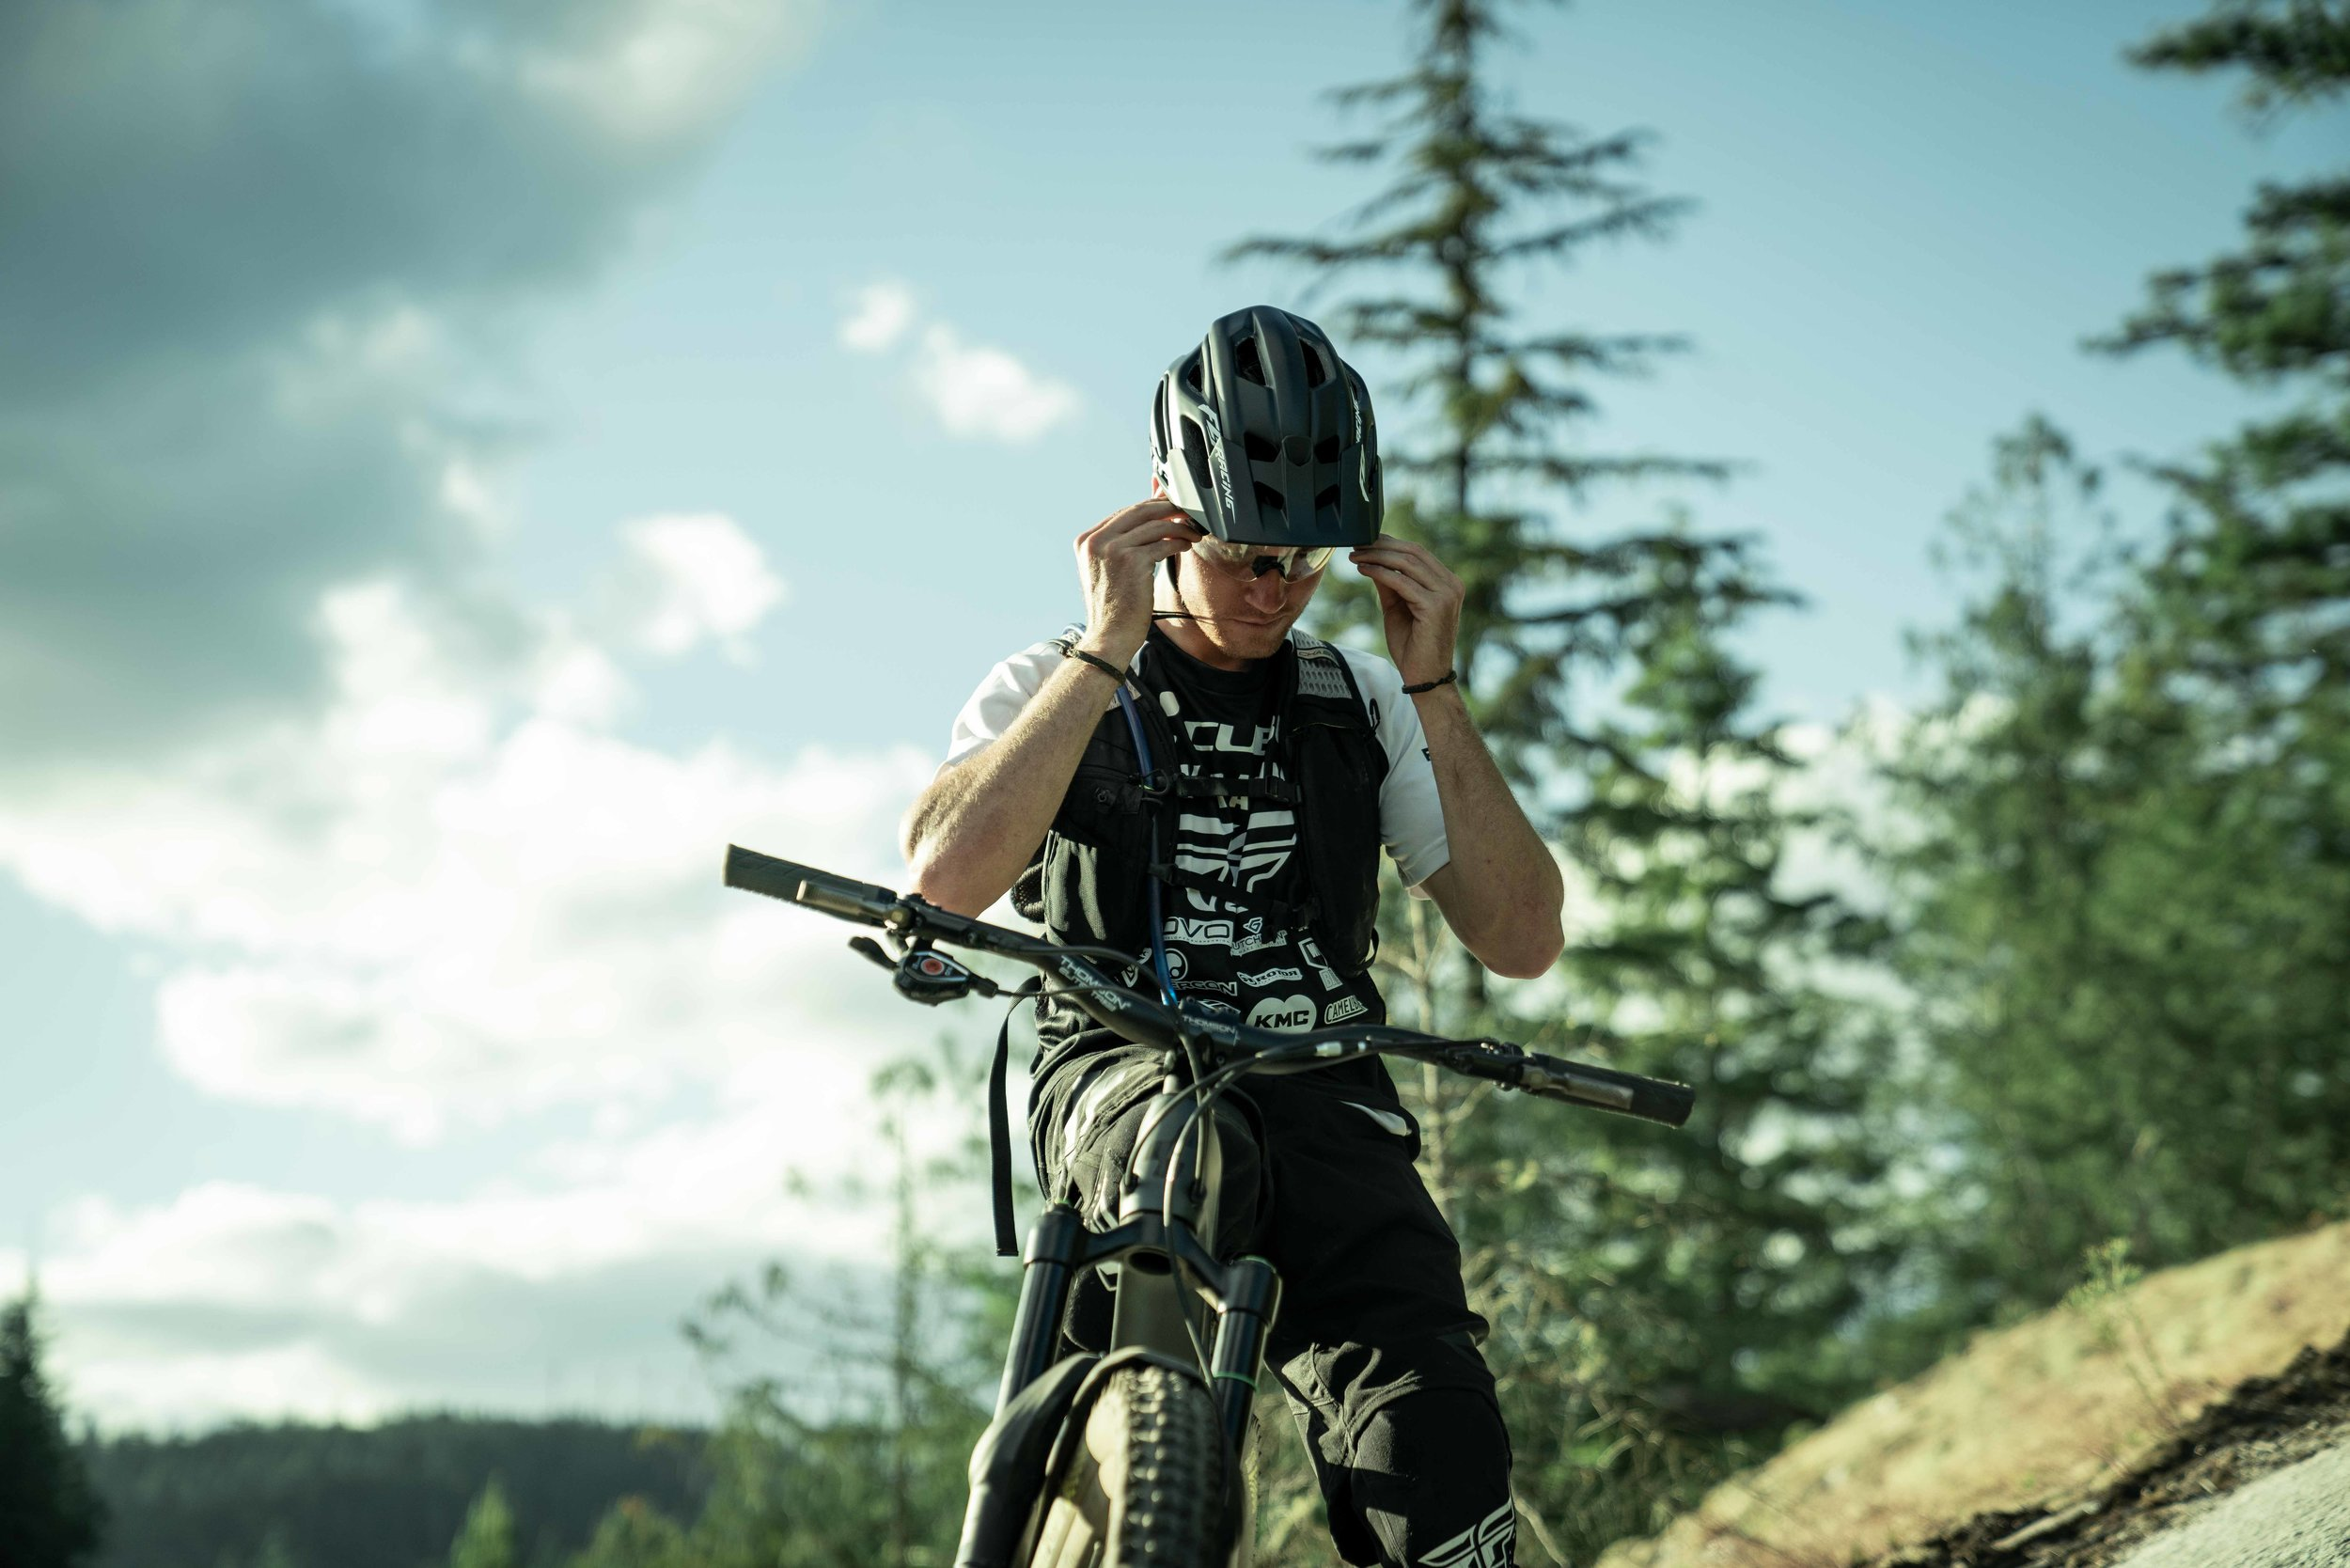 chasewhite-remymetailler-squamish-18.jpg